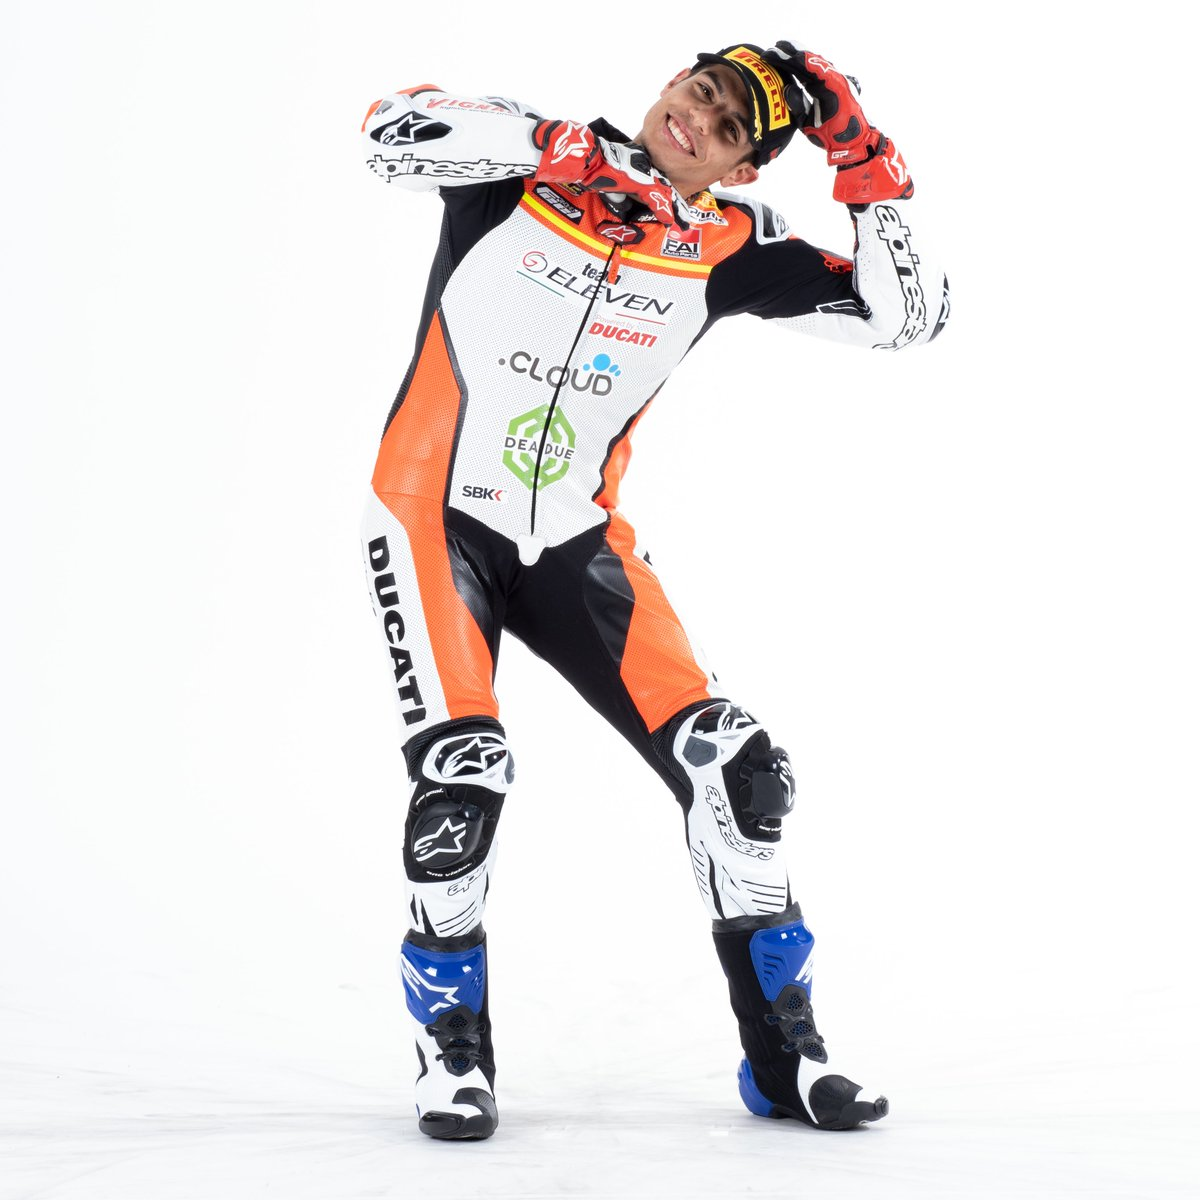 test Twitter Media - With #StayAtHome we thought we'd have a little fun with the riders for #AprilFoolsDay We asked them to do their victory celebration and for some we really have no idea what's going on! 🤪 @michaelrinaldi_ , can you explain this pose please?🤔 https://t.co/WKzOpXtfe9